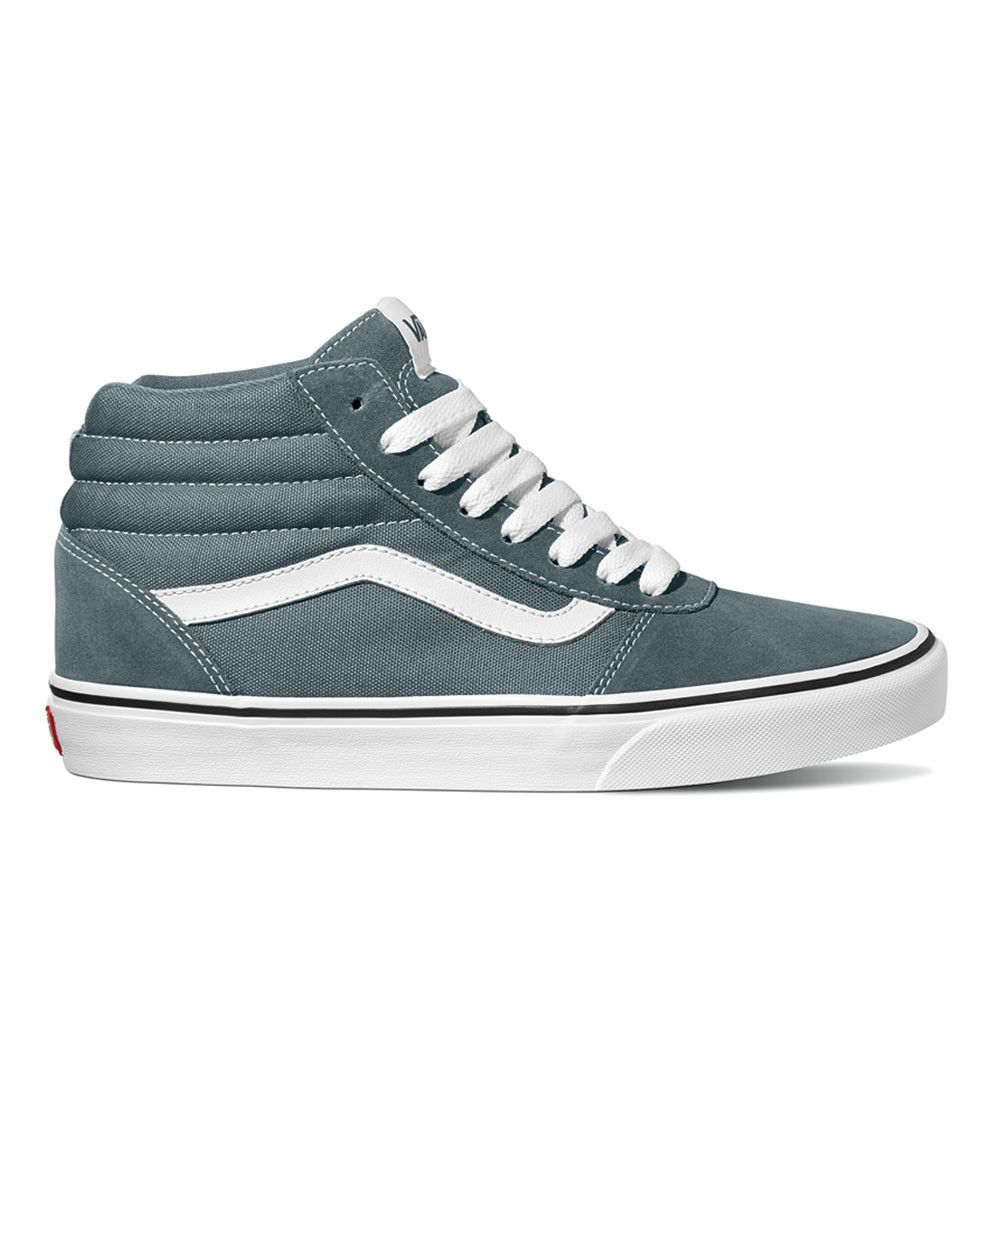 24e55ba68c6 Vans Ward Hi (stormy weather white). Available in size 13-15.  size13   size14  size15  bigfeet  bigshoes  bigtrainers  vans  footwear  tall   tallmen   ...